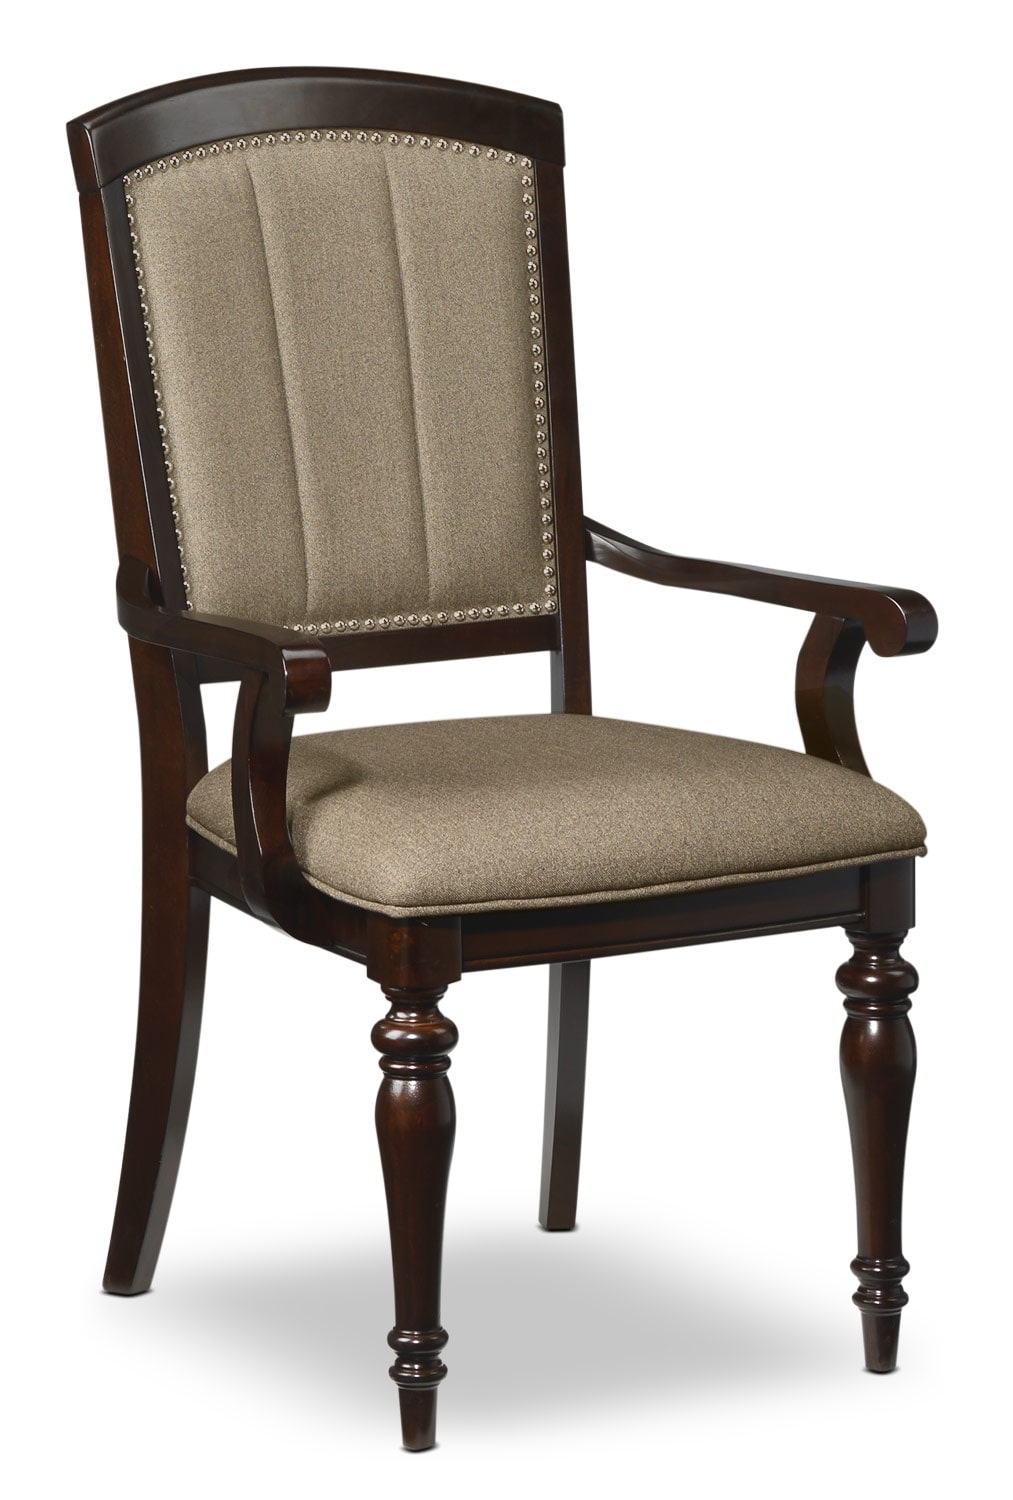 Thoreaux Arm Chair - Dark Cherry